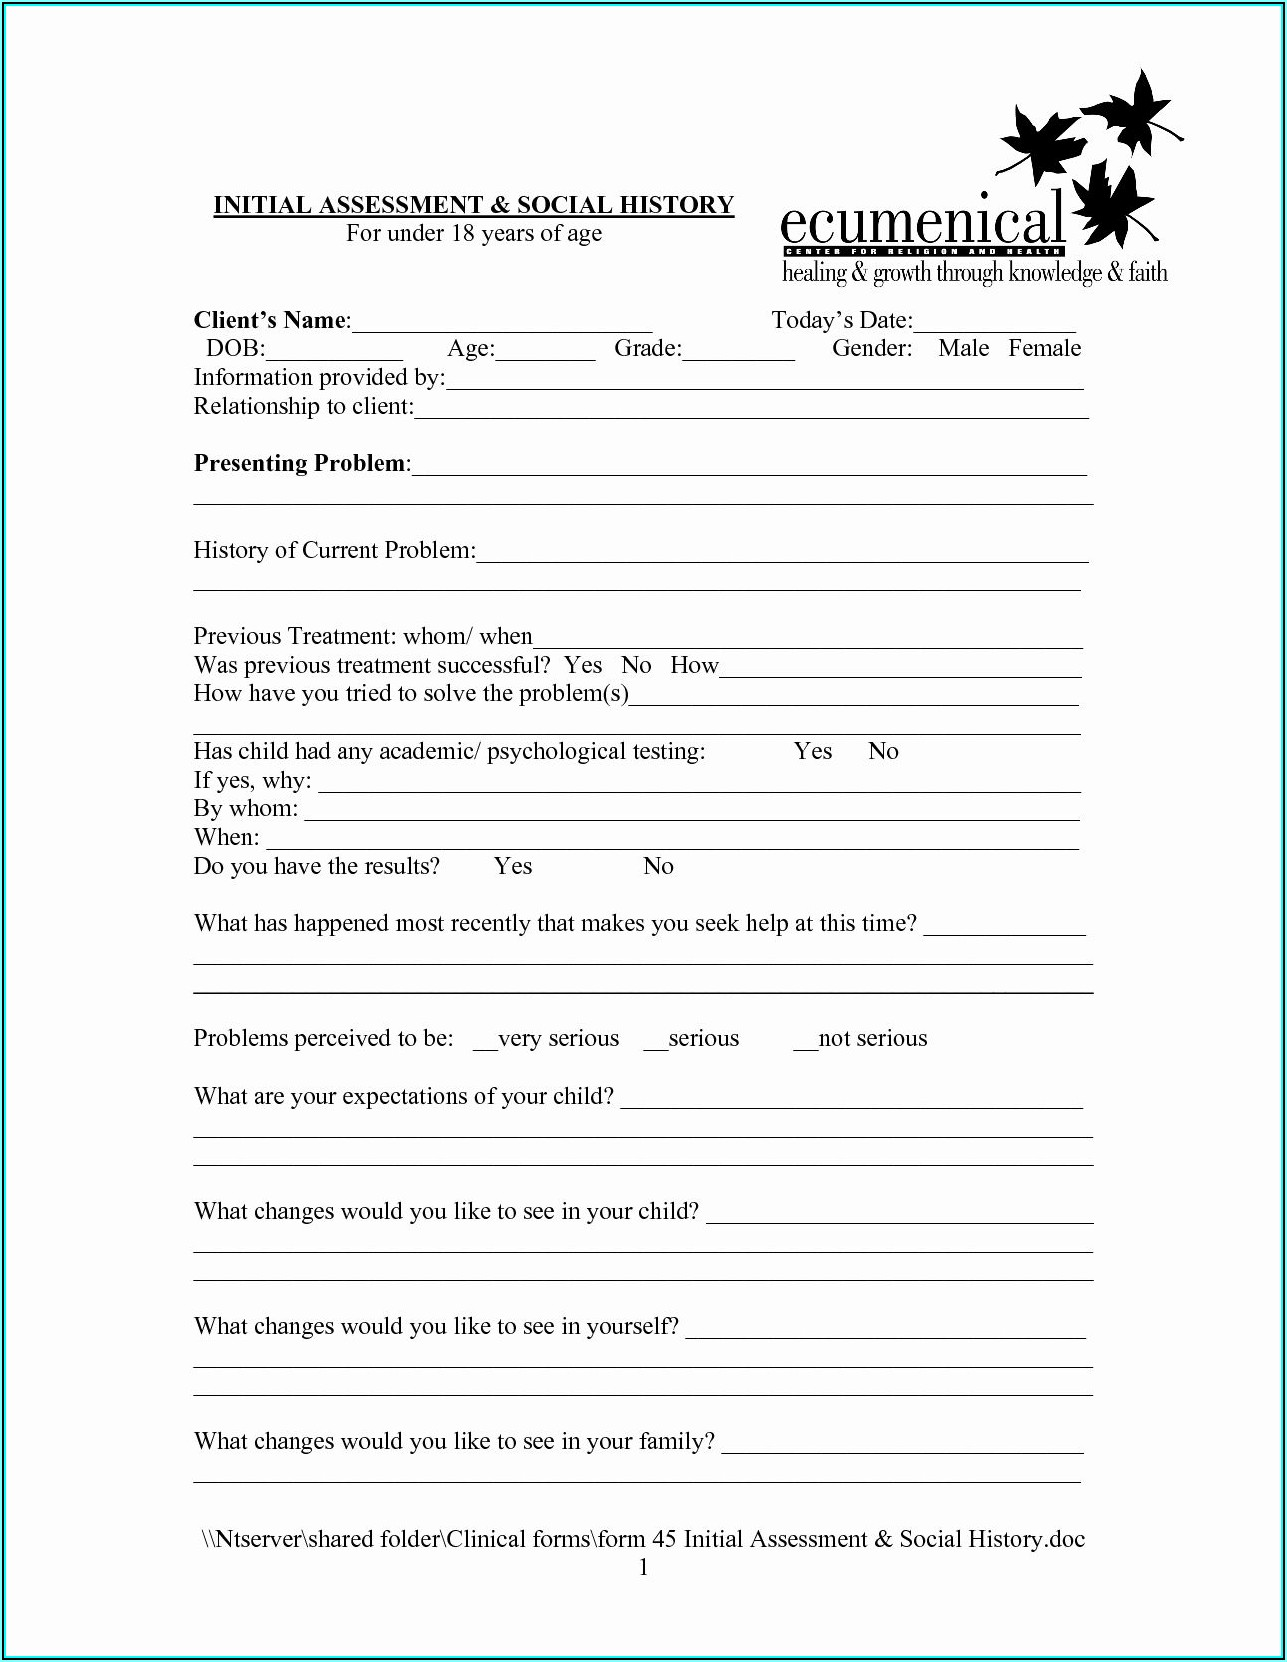 Tax Preparation Client Intake Form Template Pdf